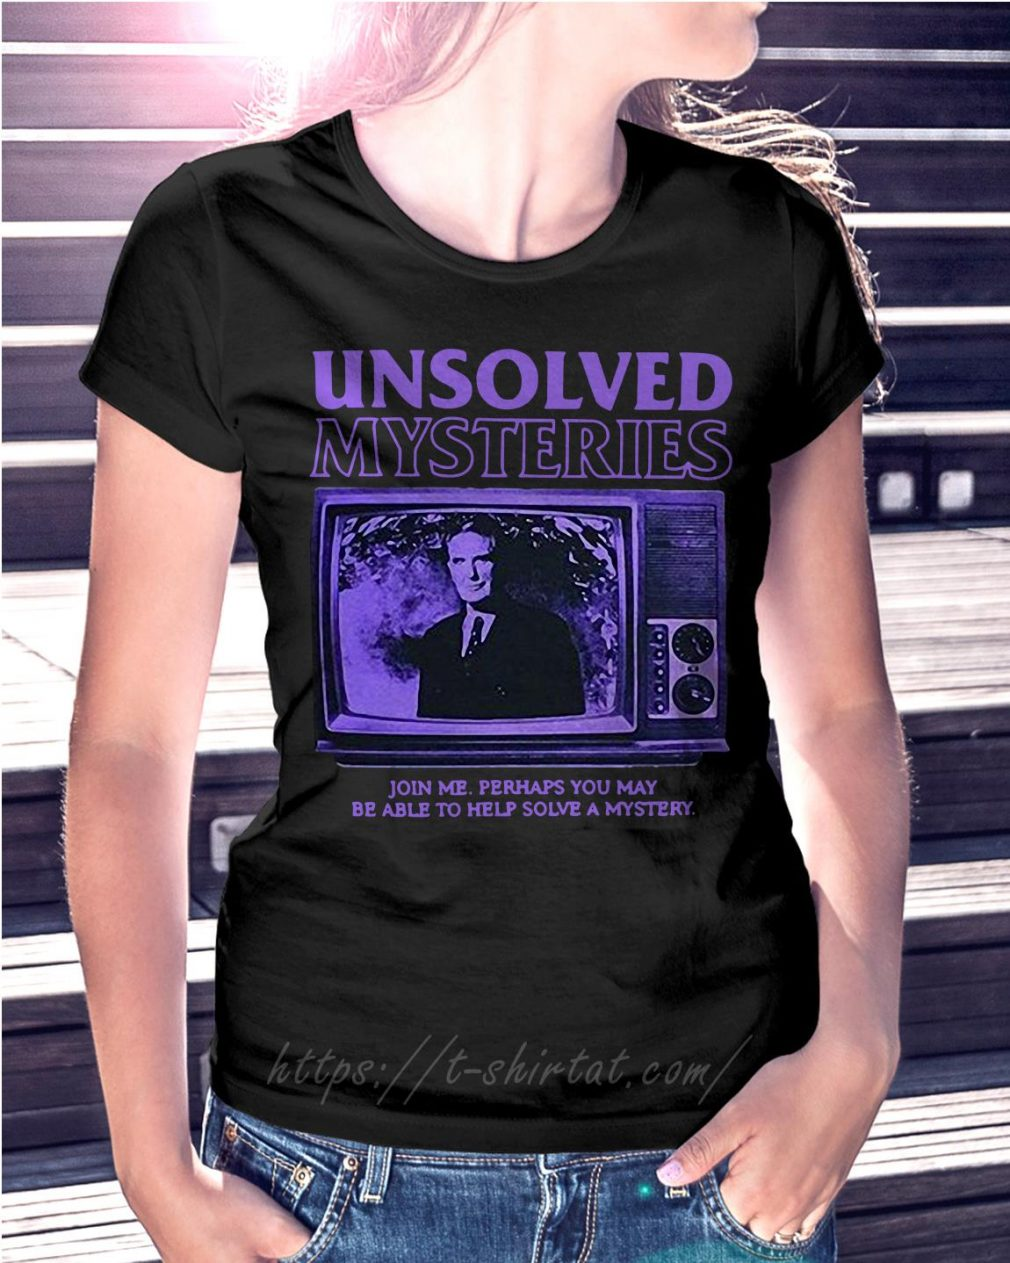 Unsolved Mysteries join me perhaps you may be able to help solve a mystery